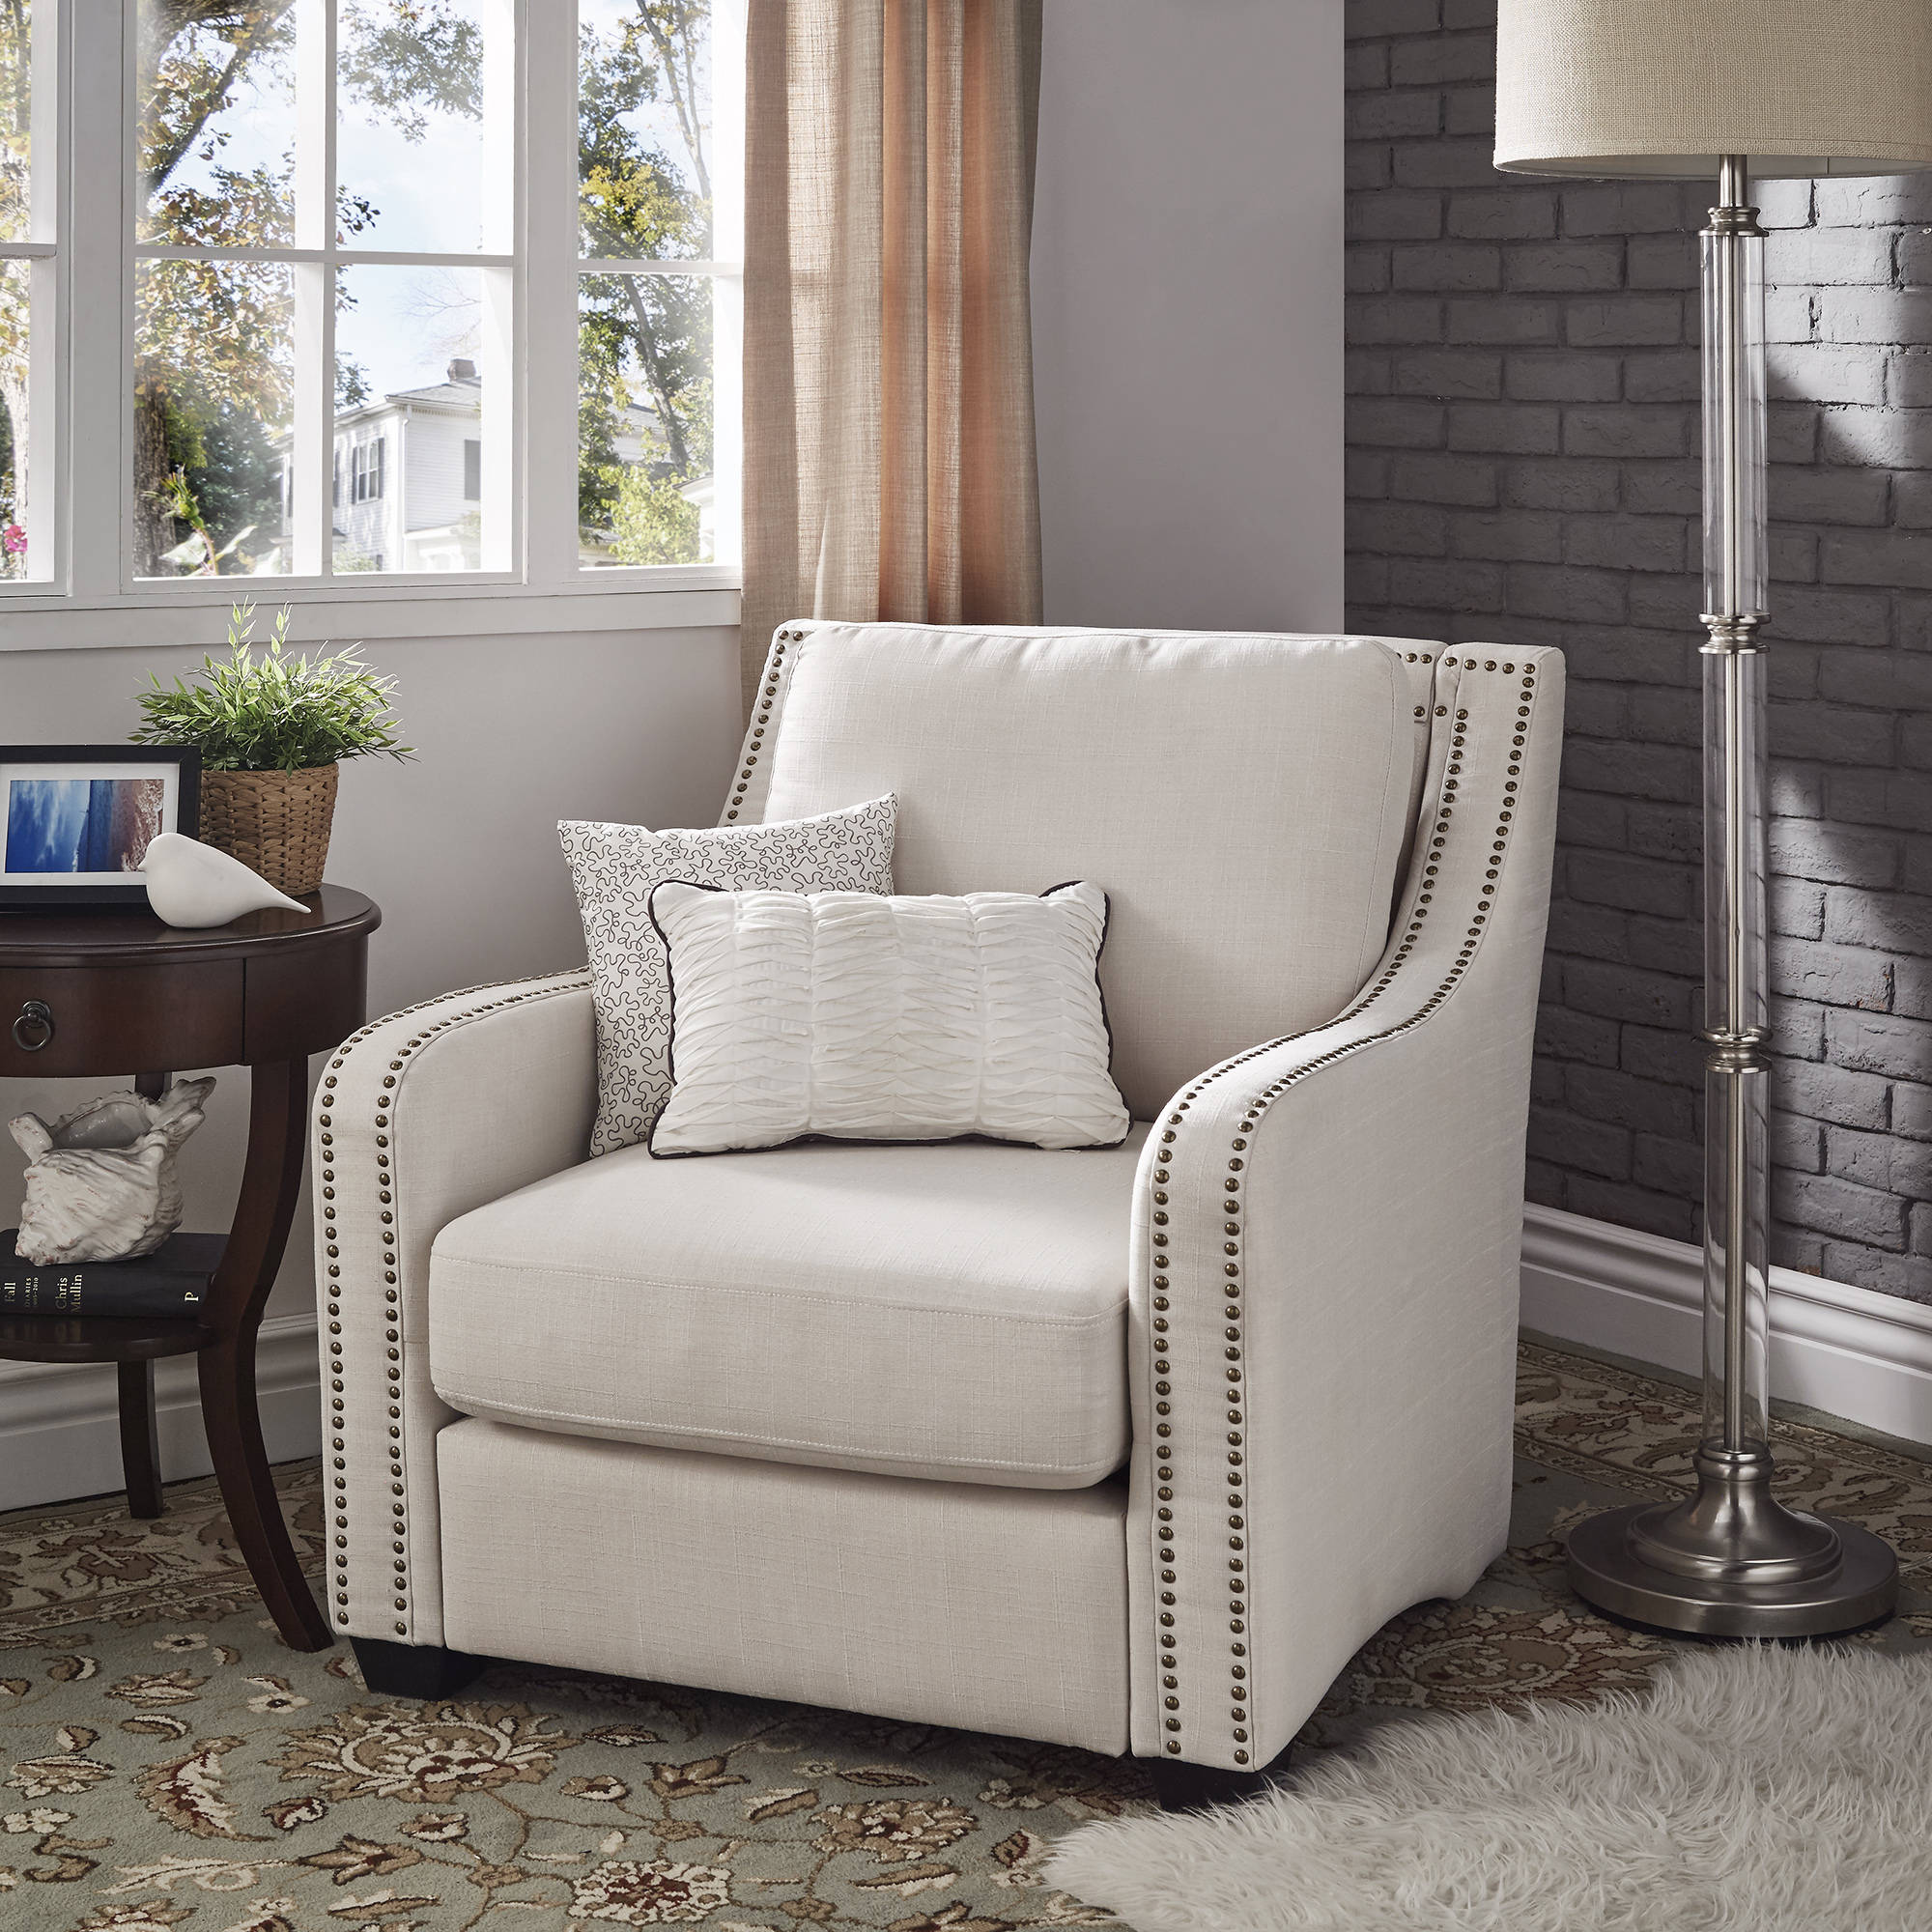 Weston Home Parker Nailhead Chair, White Linen